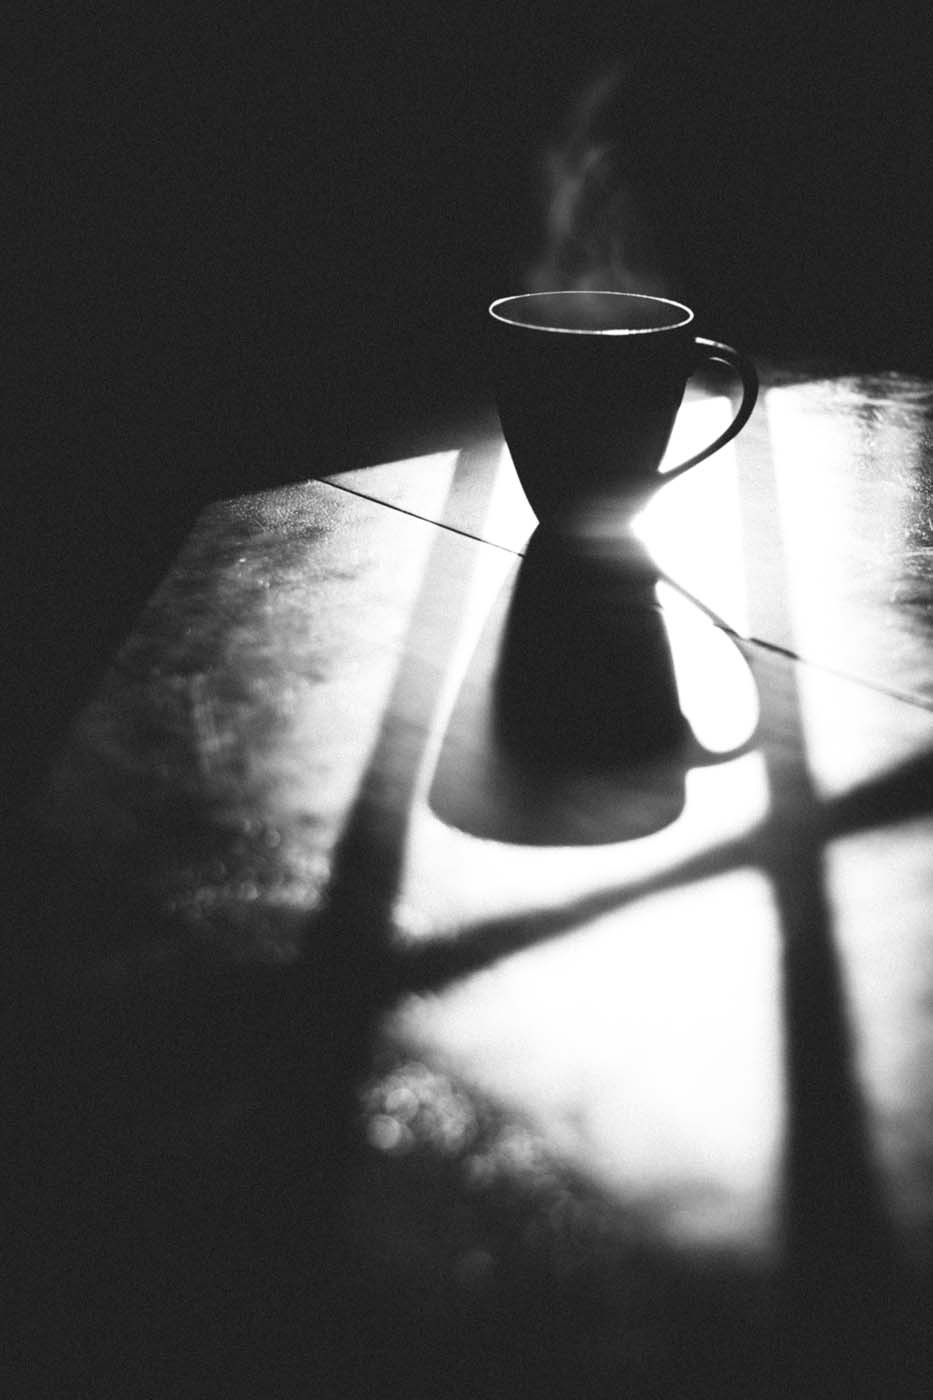 Morning Ritual by Jurate Photography